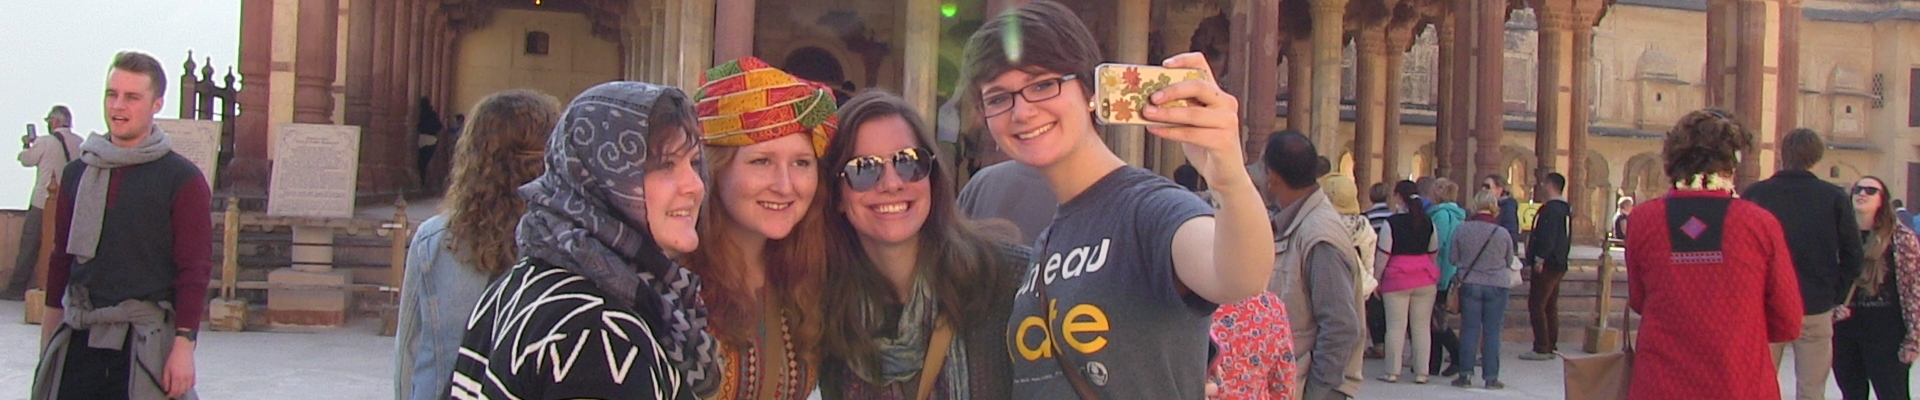 Women's studies students during winterim immersions in India.